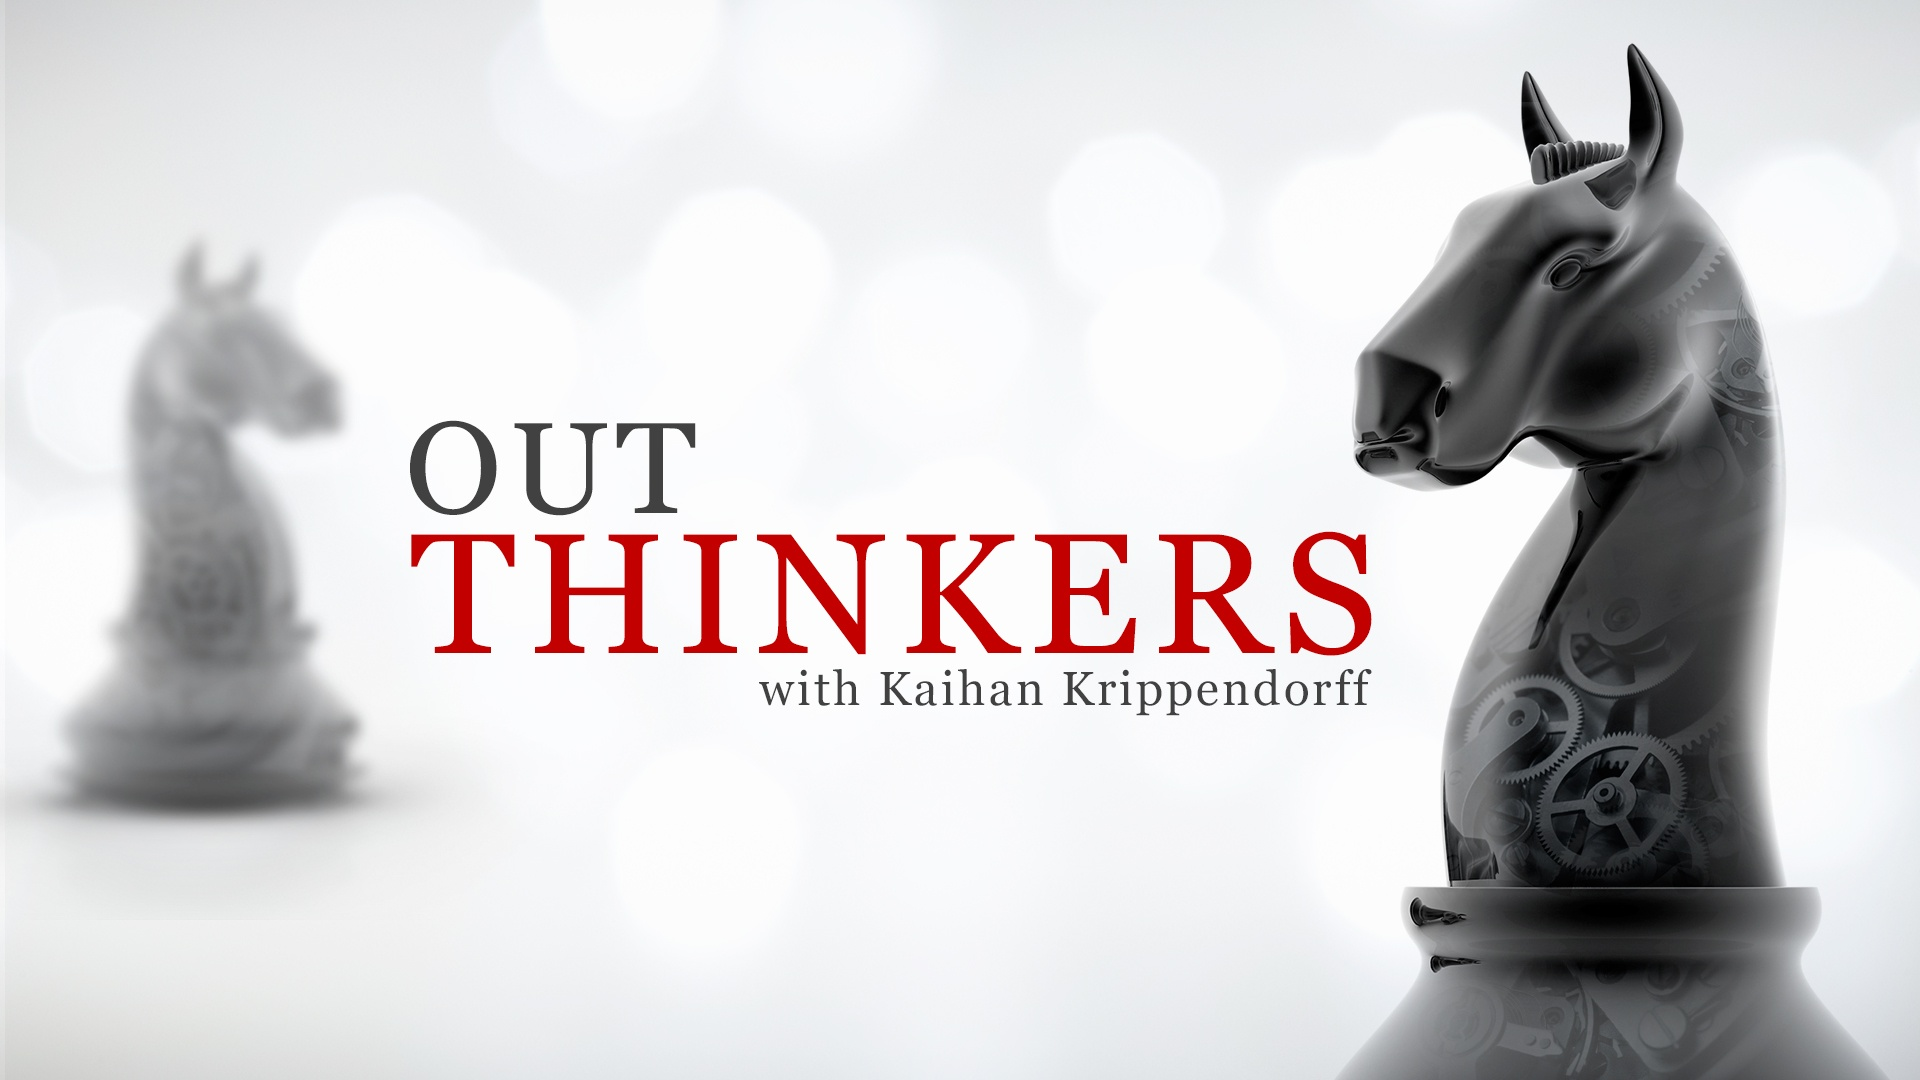 Outthink the Competition Chess Piece